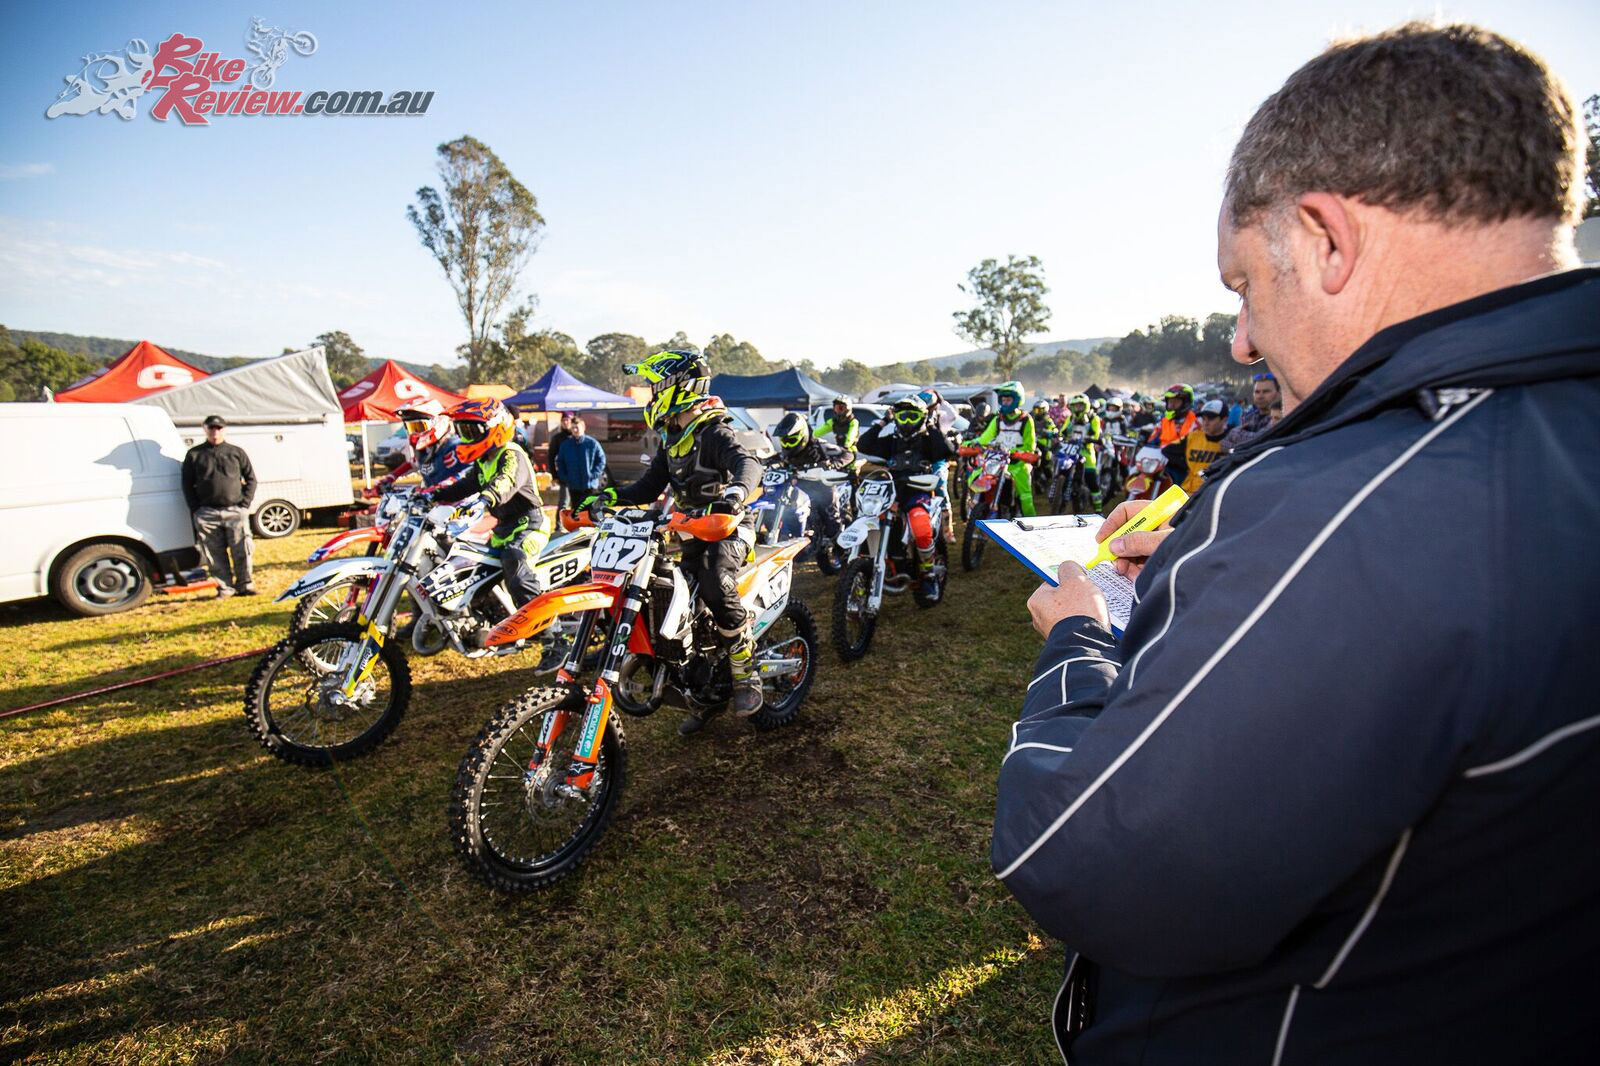 J4 Class heading out - AORC 2018 Round 5